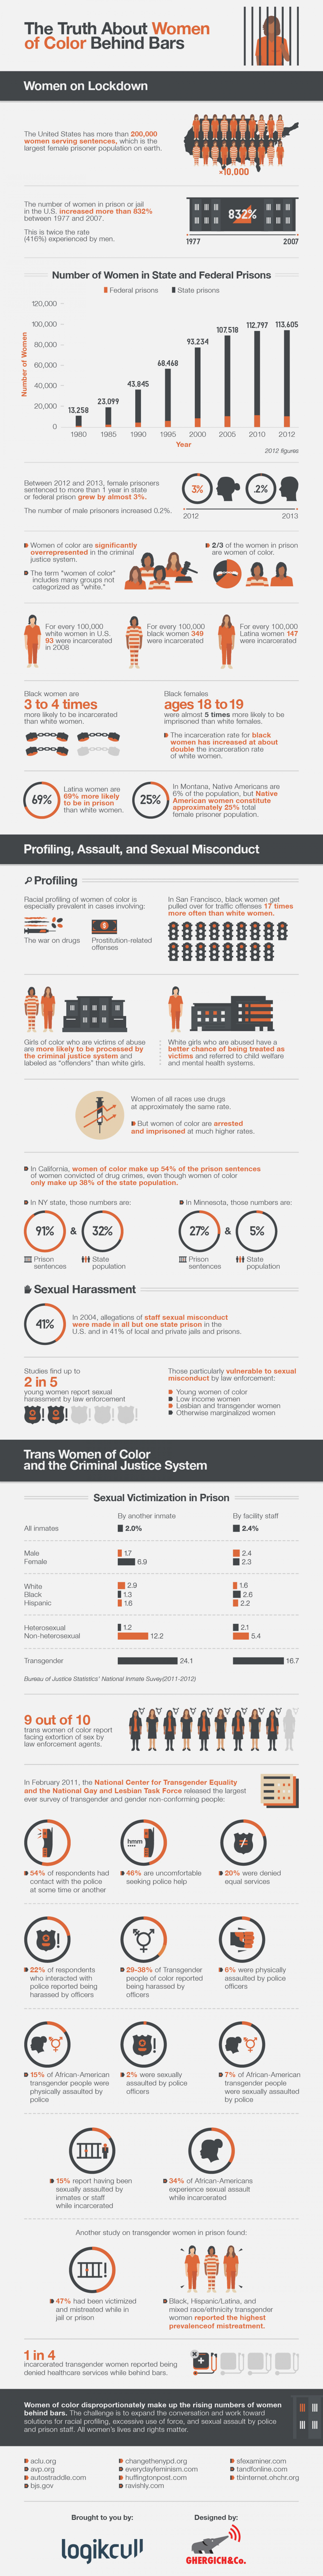 The Truth About Women of Color Behind Bars Infographic